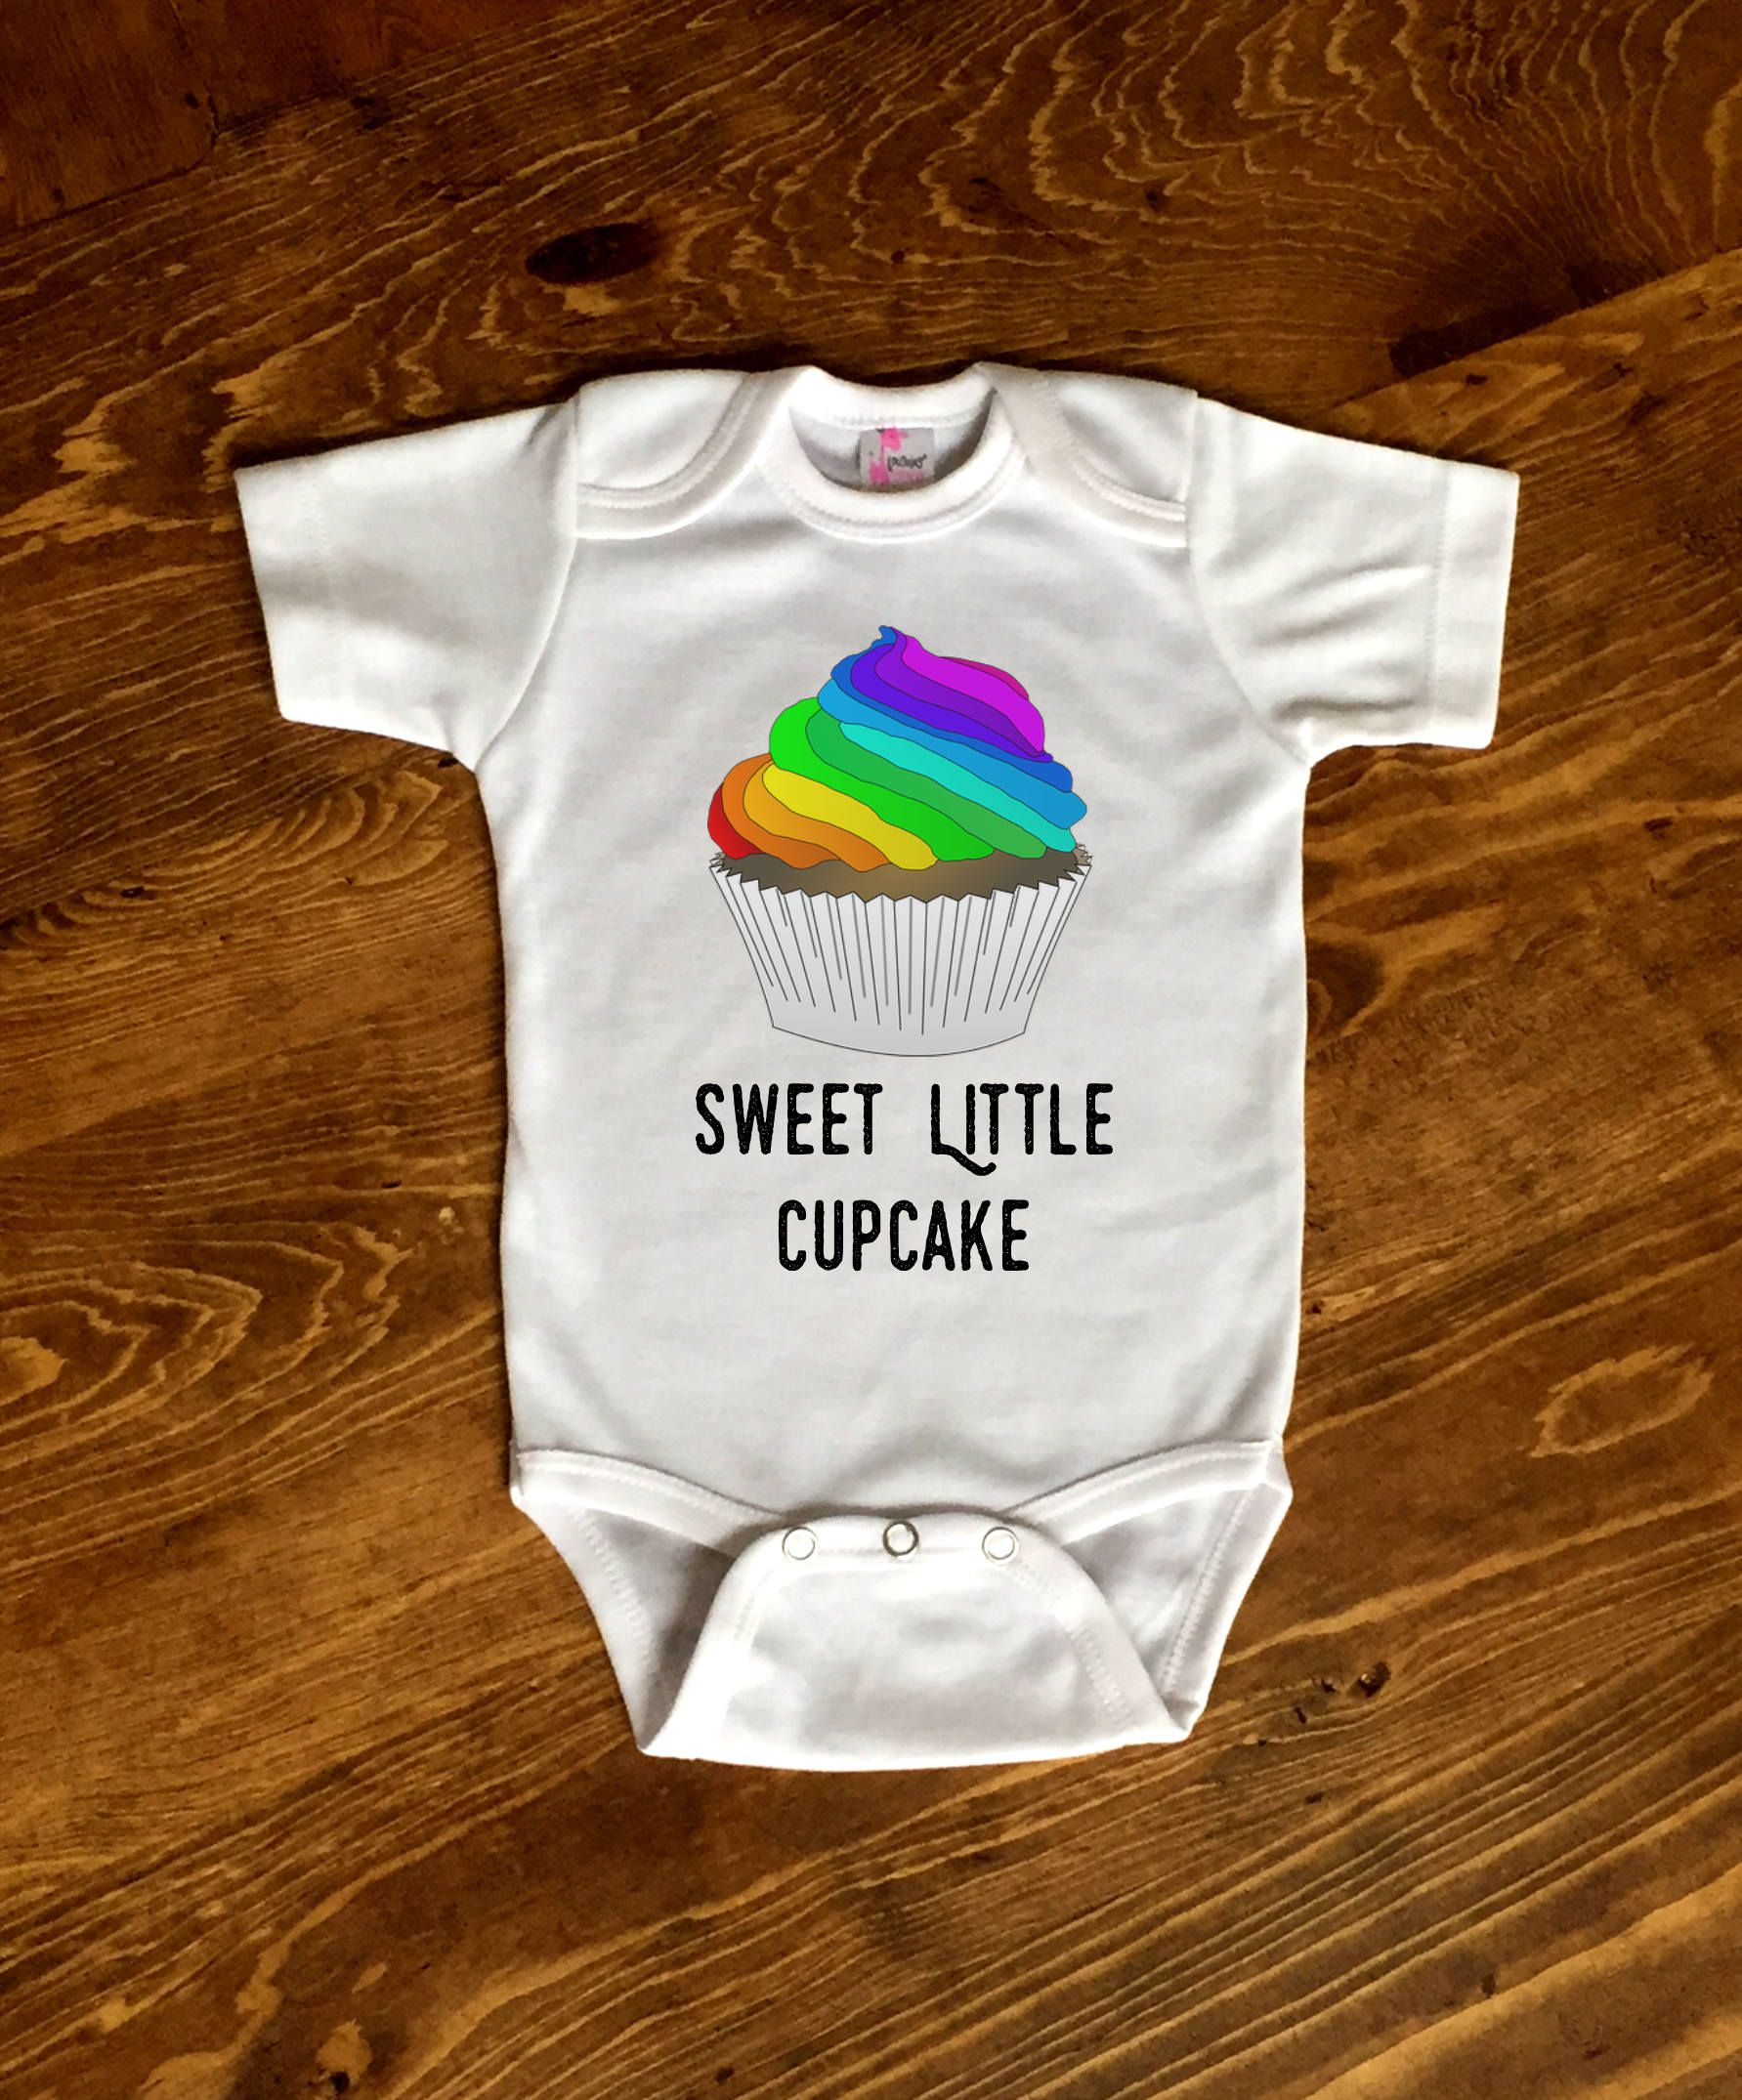 866130820 Cupcake Baby Clothes, Cupcake Baby Shower, Funny Baby Girl, Sweet Baby  Girl, Rainbow Baby Outfit, Rainbow Baby Gift, Sweet Little Baby Gift by ...